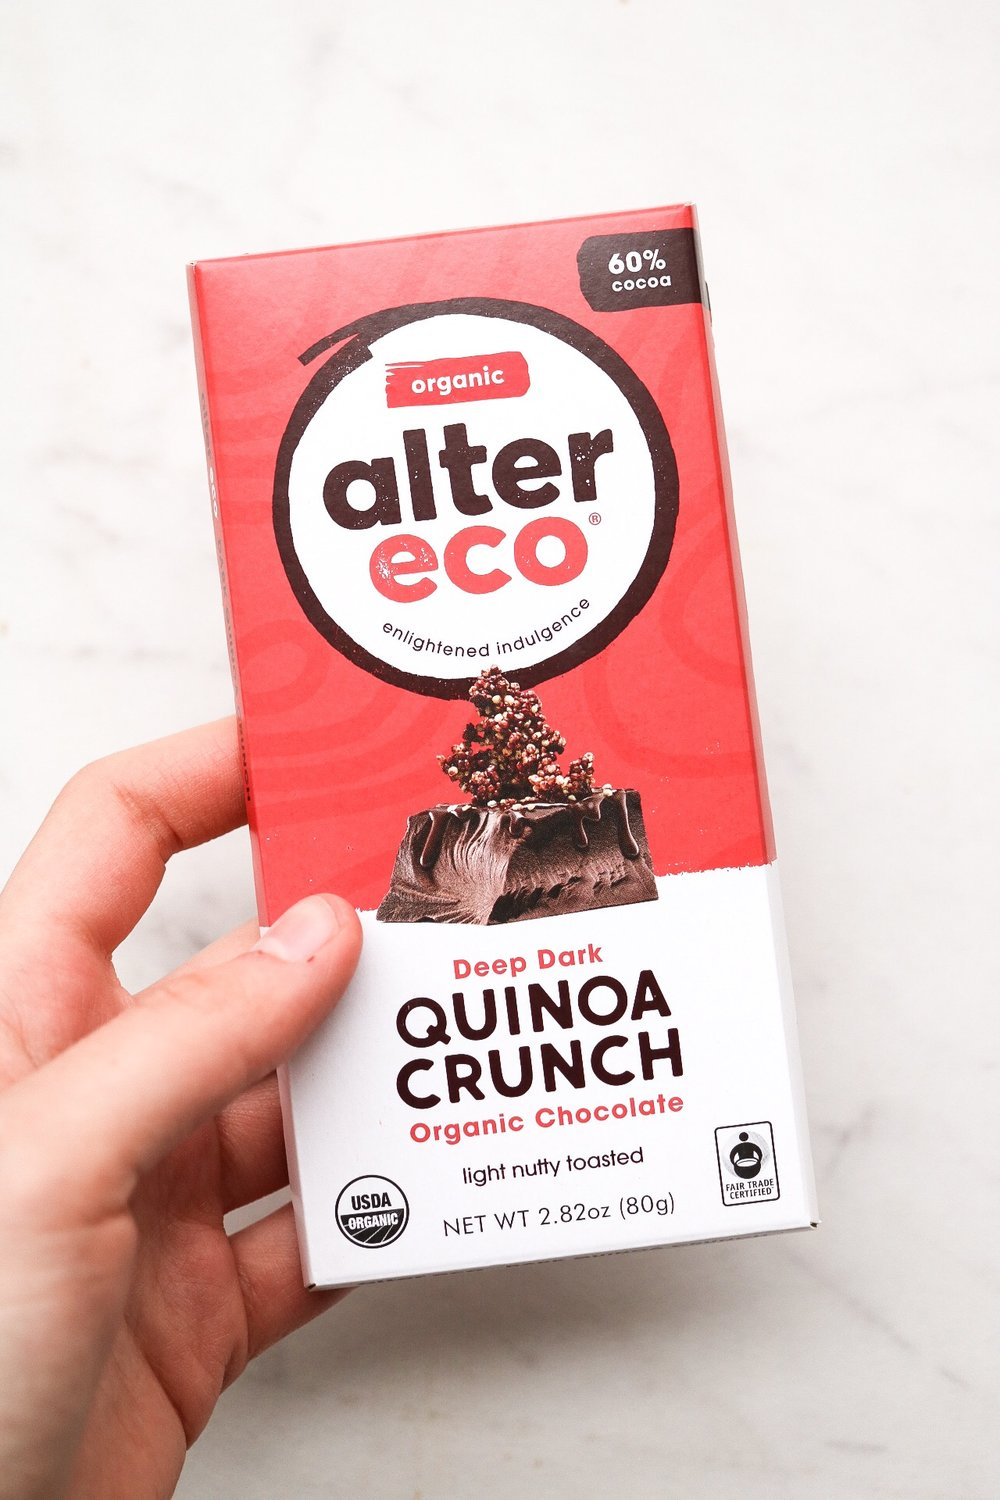 One of my all time favorite chocolate bars - so good even just on it's own! But especially amazing thrown into these cookies.